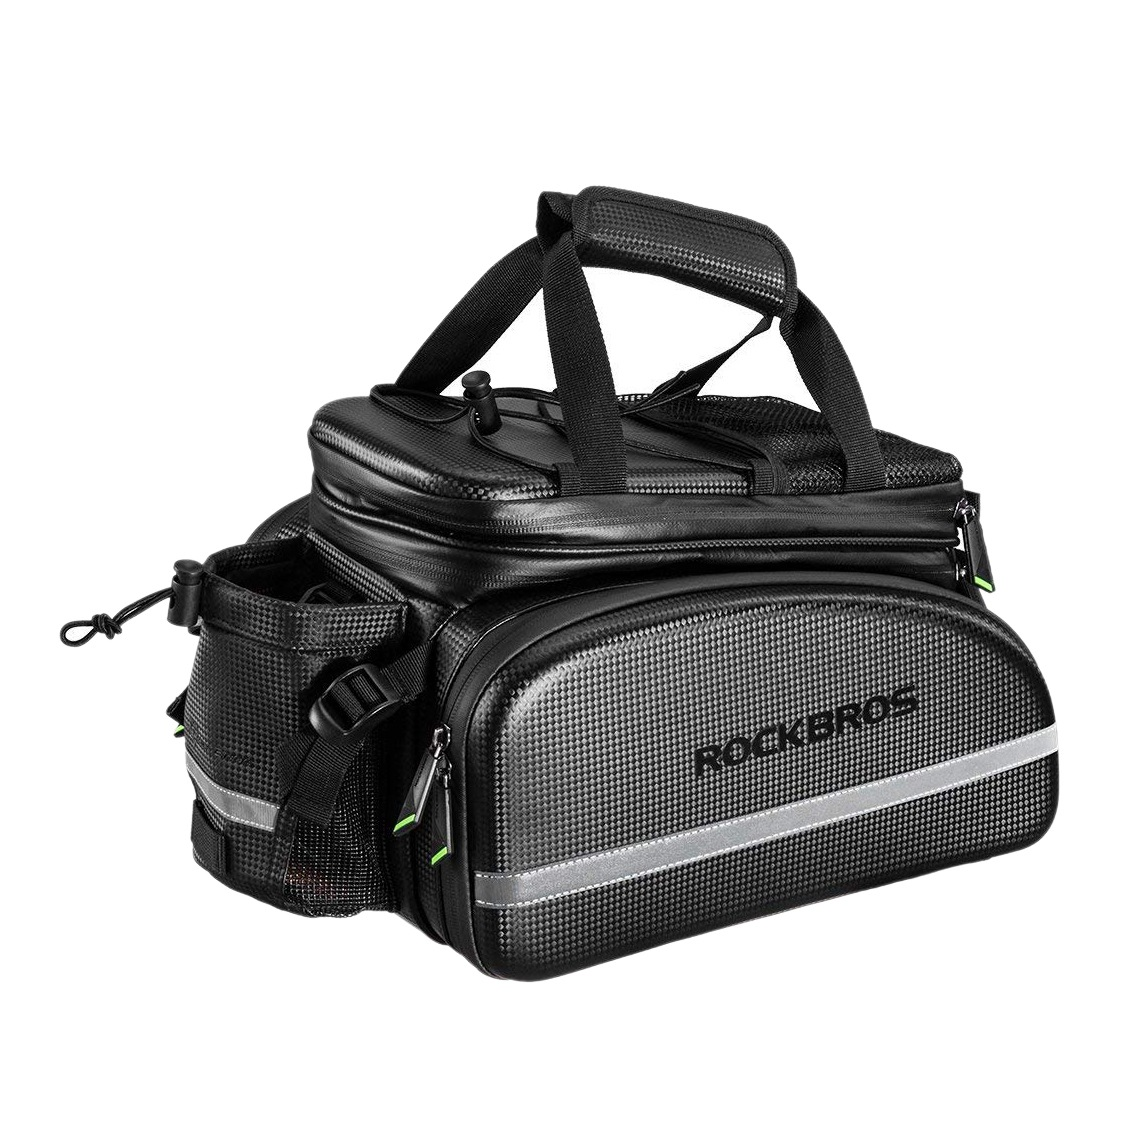 HOT-Rockbros Bike Rack Bag Trunk Bag Waterproof Bicycle Rear Seat Cargo Bag Rear Pack Trunk Pannier HandbagHOT-Rockbros Bike Rack Bag Trunk Bag Waterproof Bicycle Rear Seat Cargo Bag Rear Pack Trunk Pannier Handbag